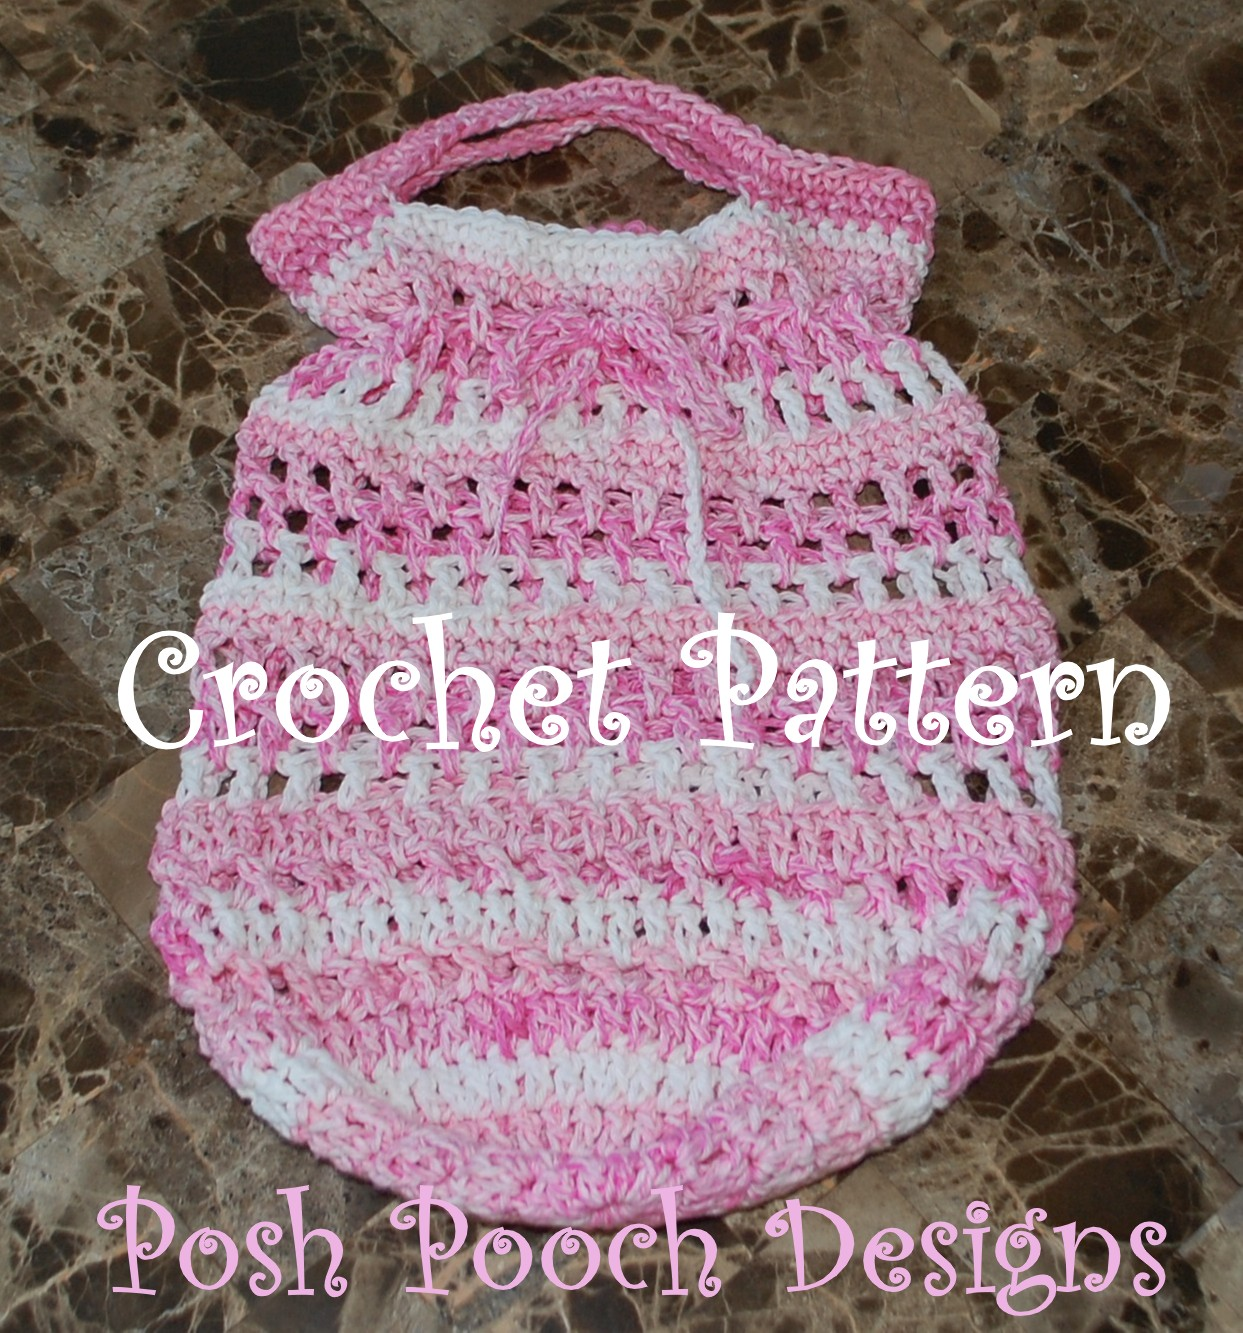 Crochet Patterns In Cotton : Posh Pooch Designs Dog Clothes: Cotton Crochet Patterns